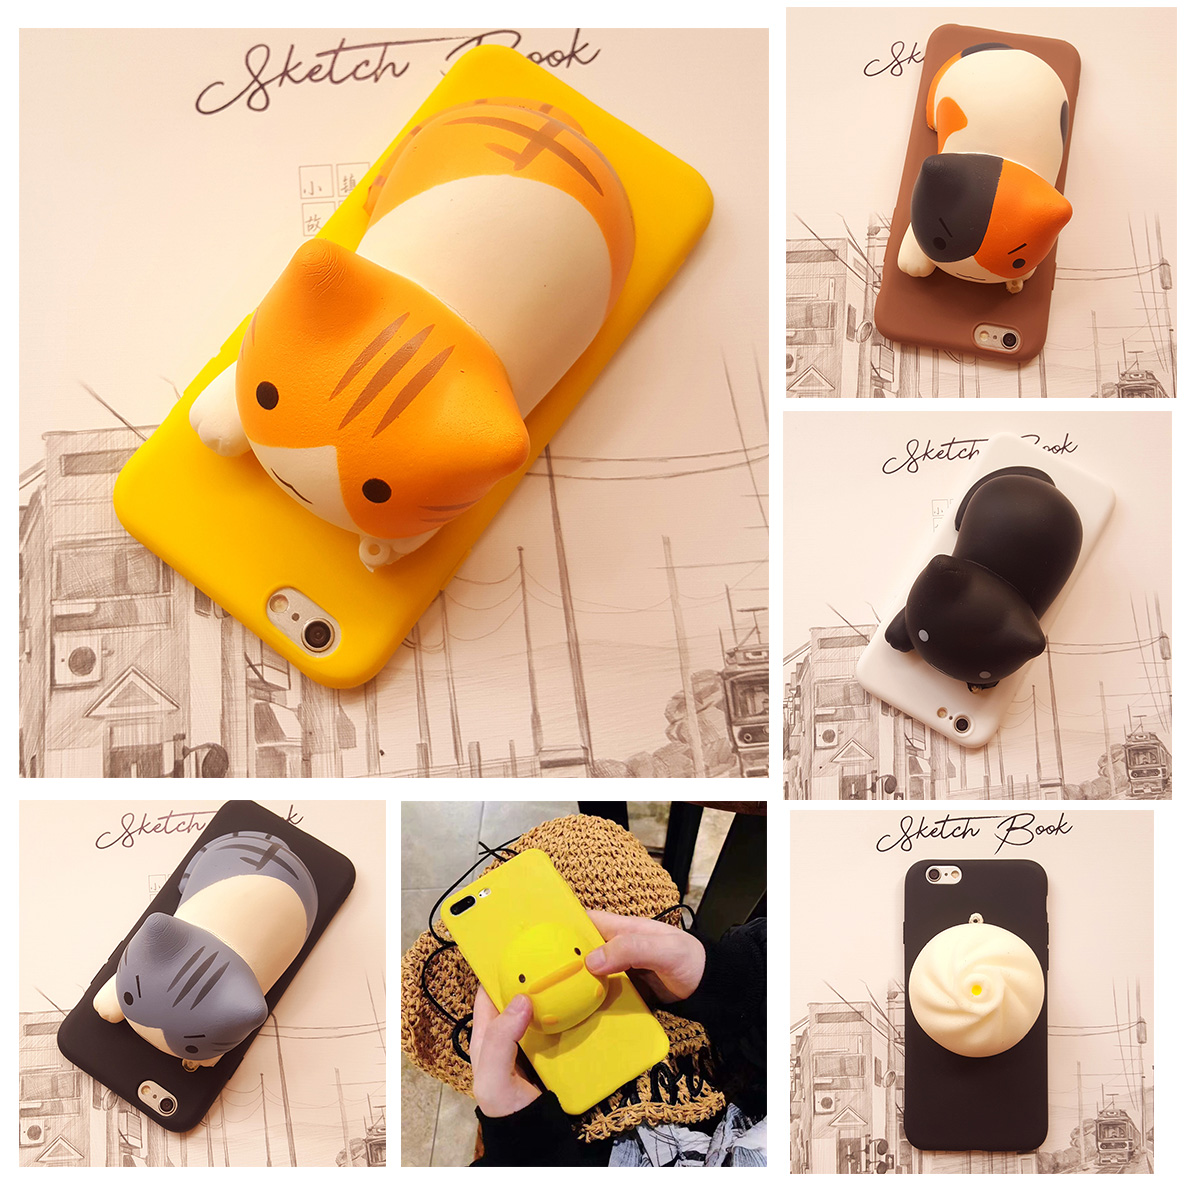 3D Cartoon Cat Holder Phone <font><b>Case</b></font> for <font><b>OPPO</b></font> A1K A3S A5S A7 A39 A57 A71 A77 A79 A8 A31 <font><b>A83</b></font> A91 A92S F1S Squeeze Stress Soft <font><b>Cover</b></font> image